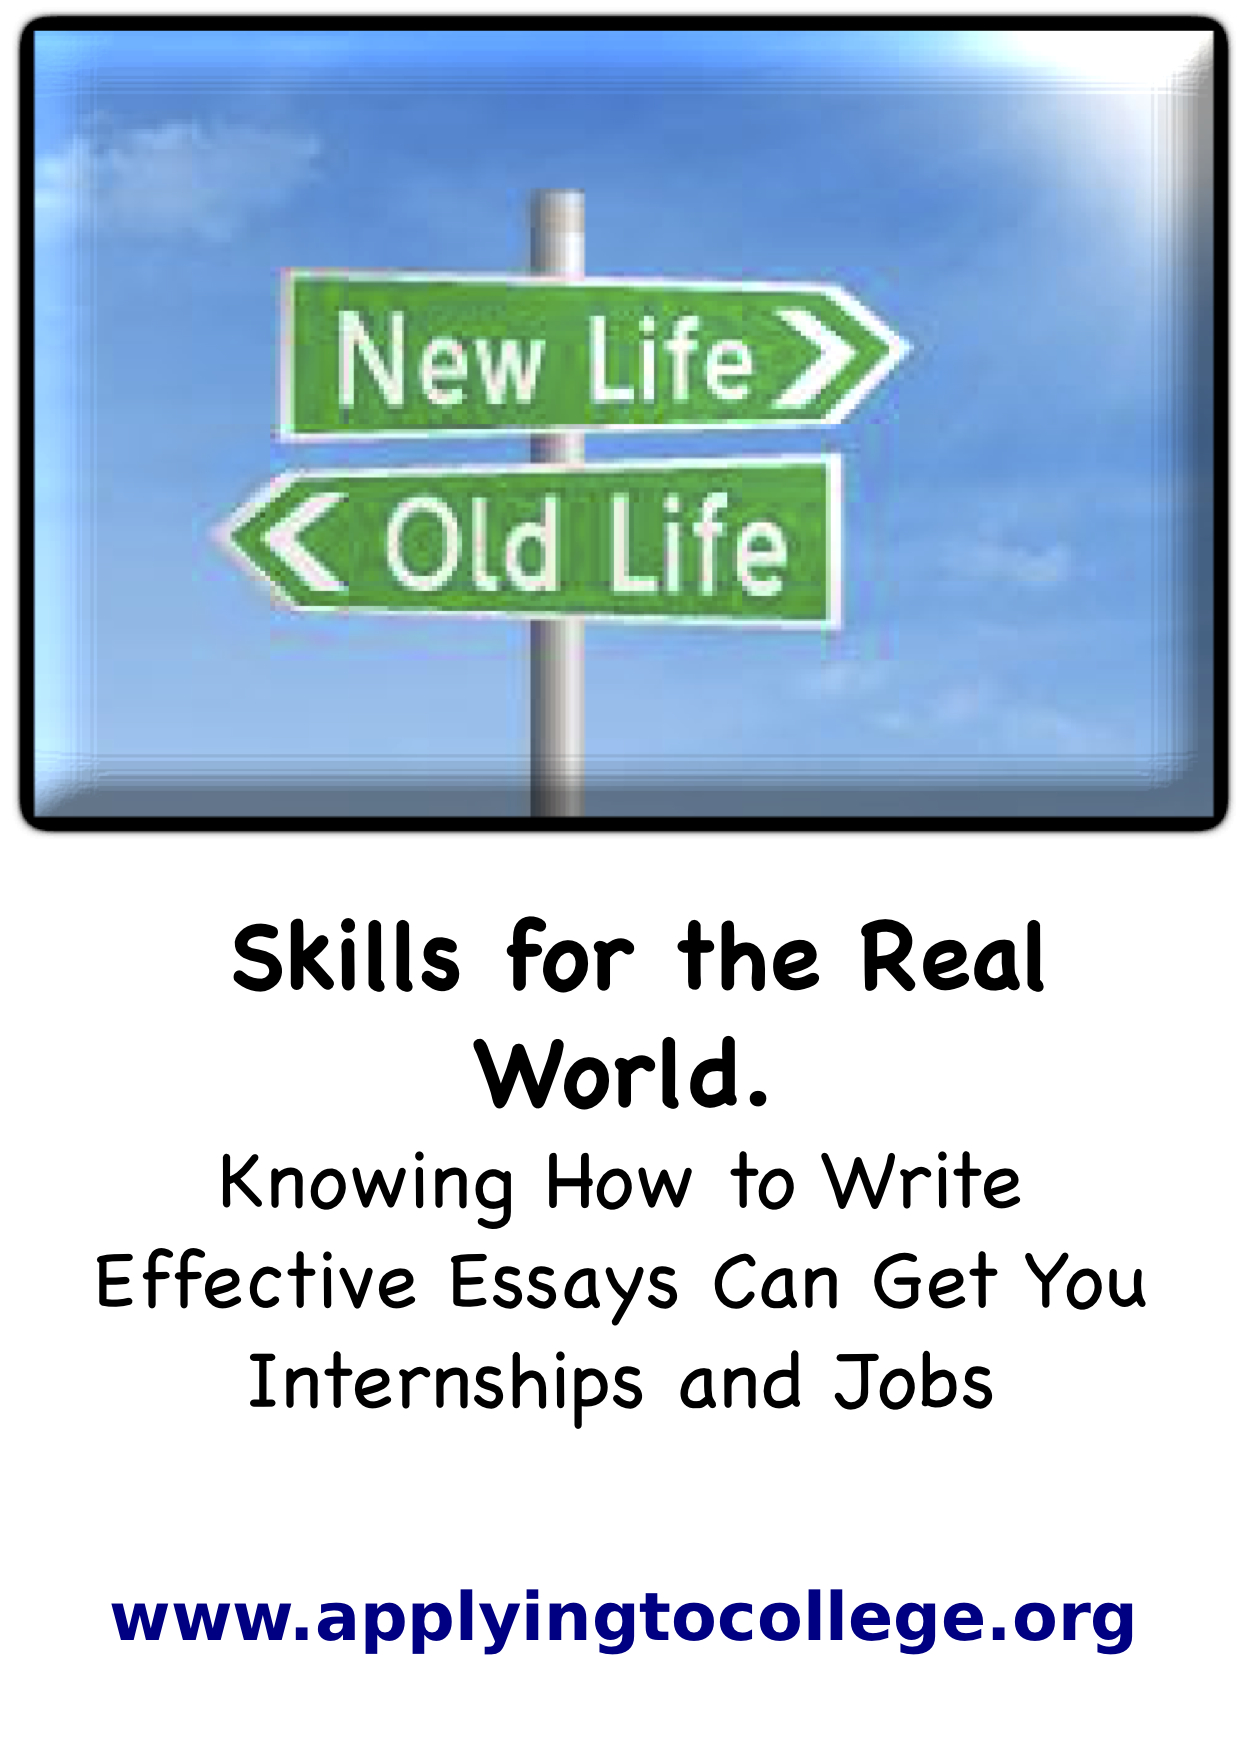 essays on skills for a job Application questionnaires, essays and other materials your federal resume is an important part of the application process, but it's not the only step toward getting a federal job.